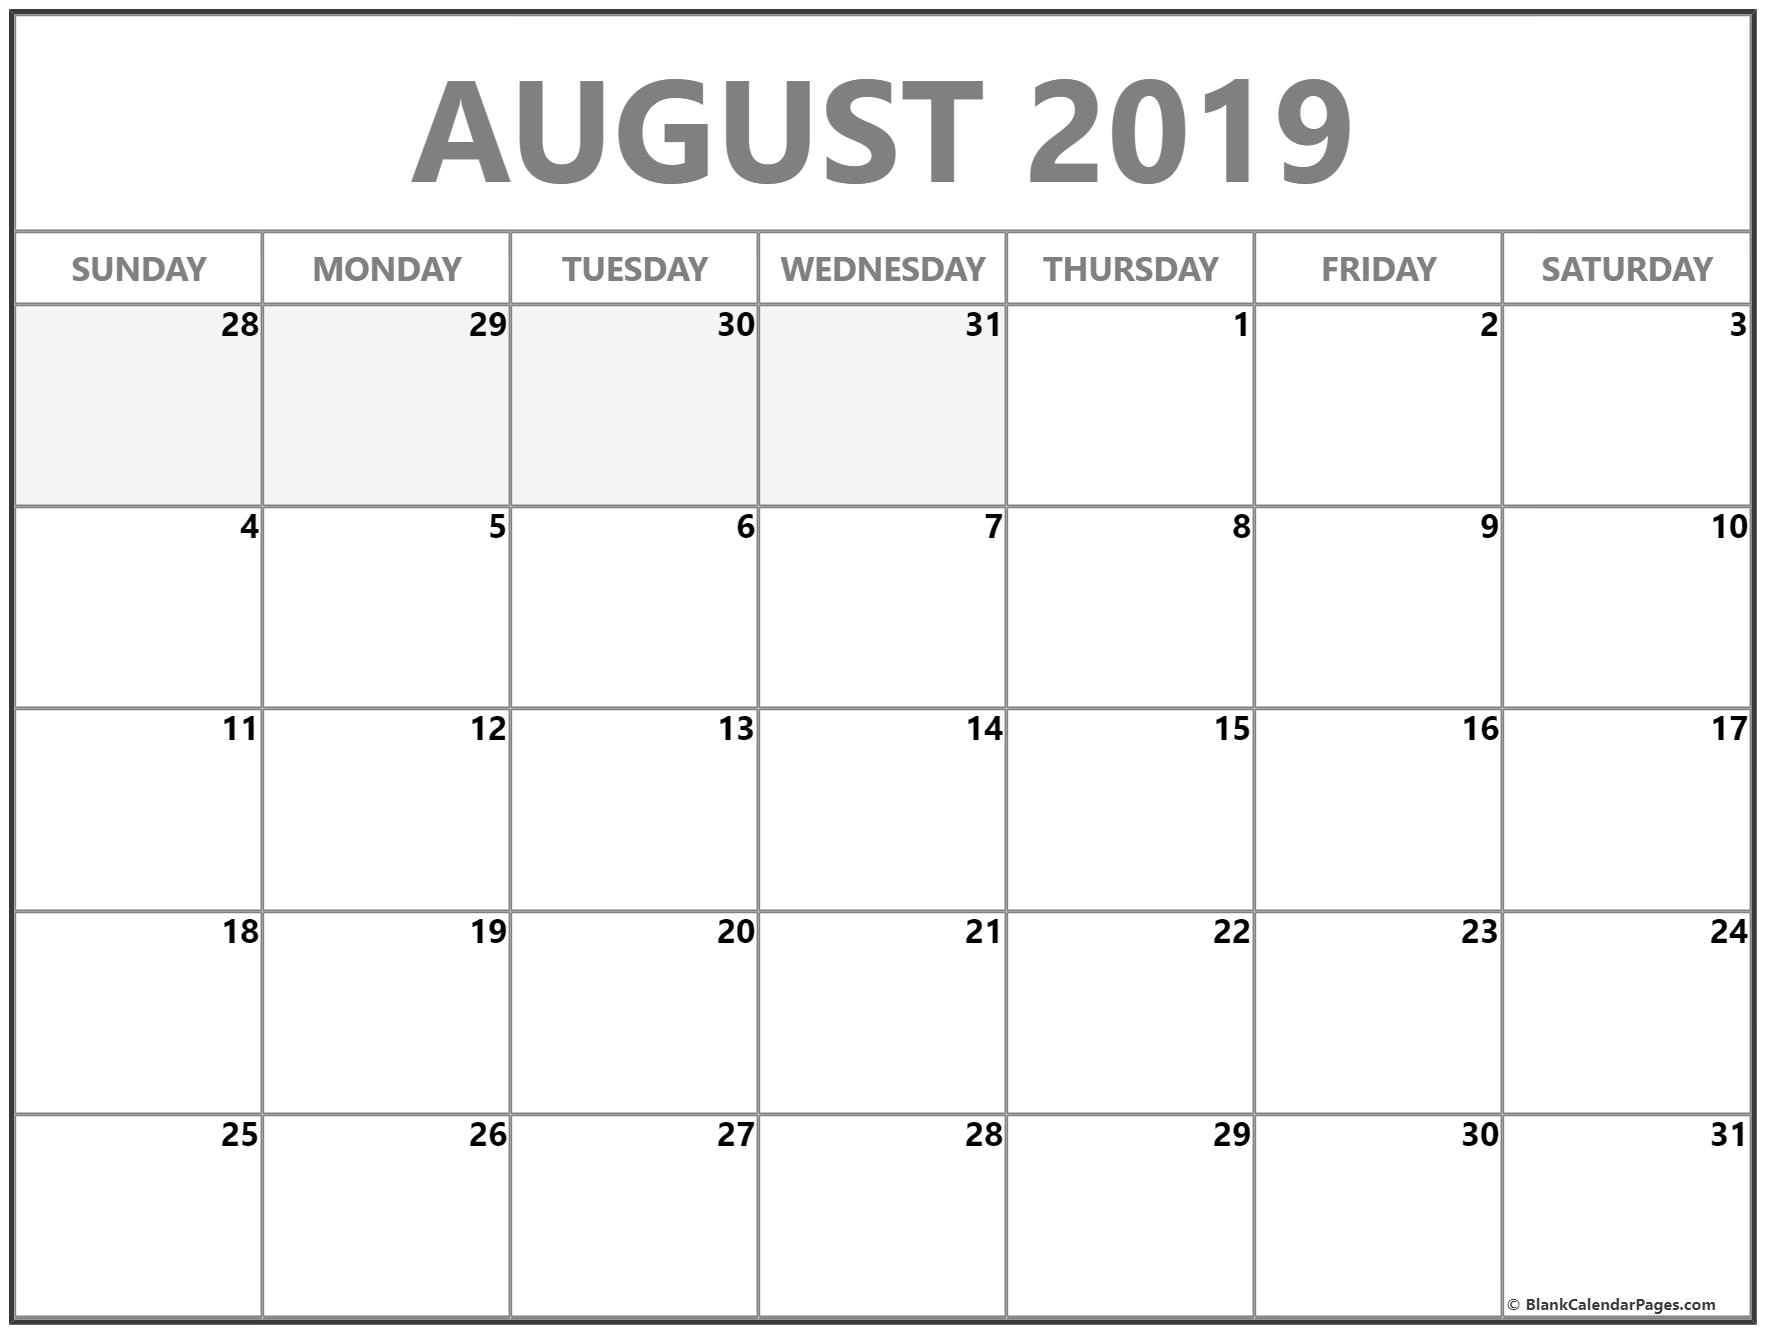 August 2019 Calendar | Free Printable Monthly Calendars inside August Printable Calendar Weekly Template